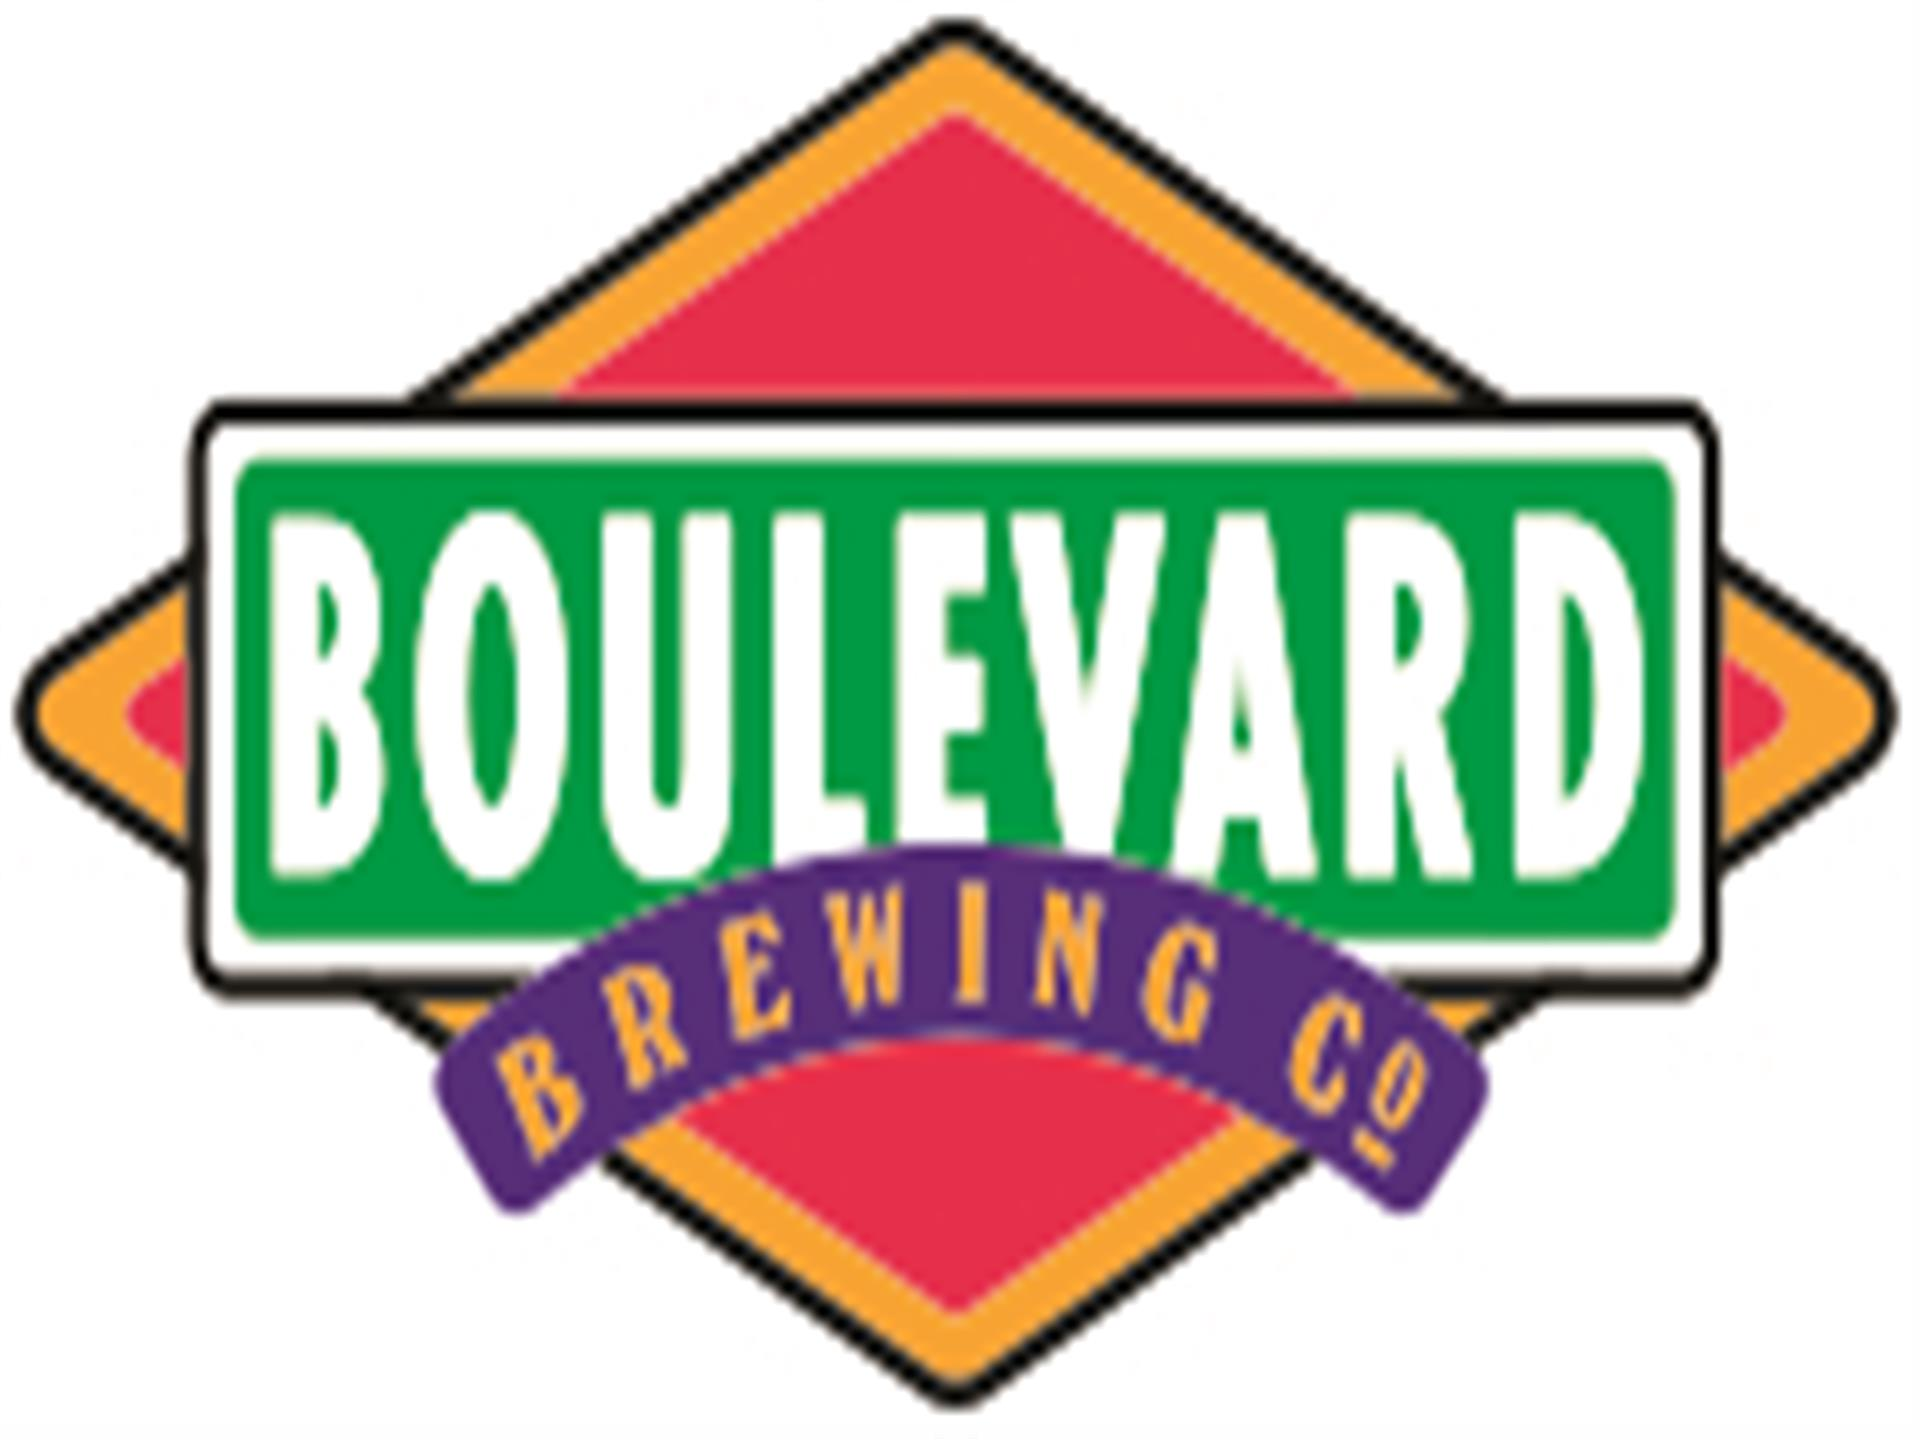 boulevard brewing co. logo